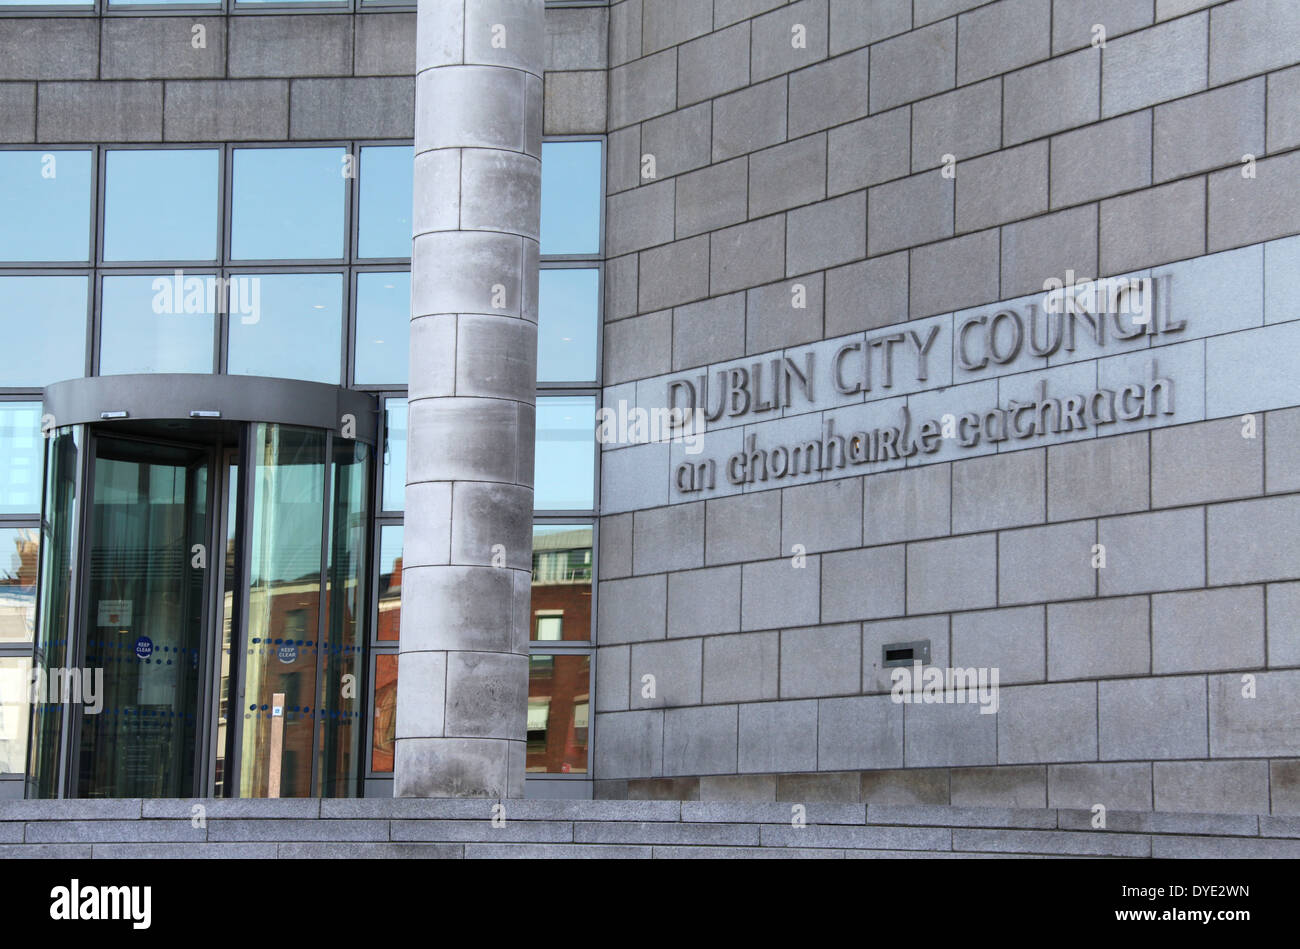 Dublin City Council Civic Offices Building on Wood Quay - Stock Image